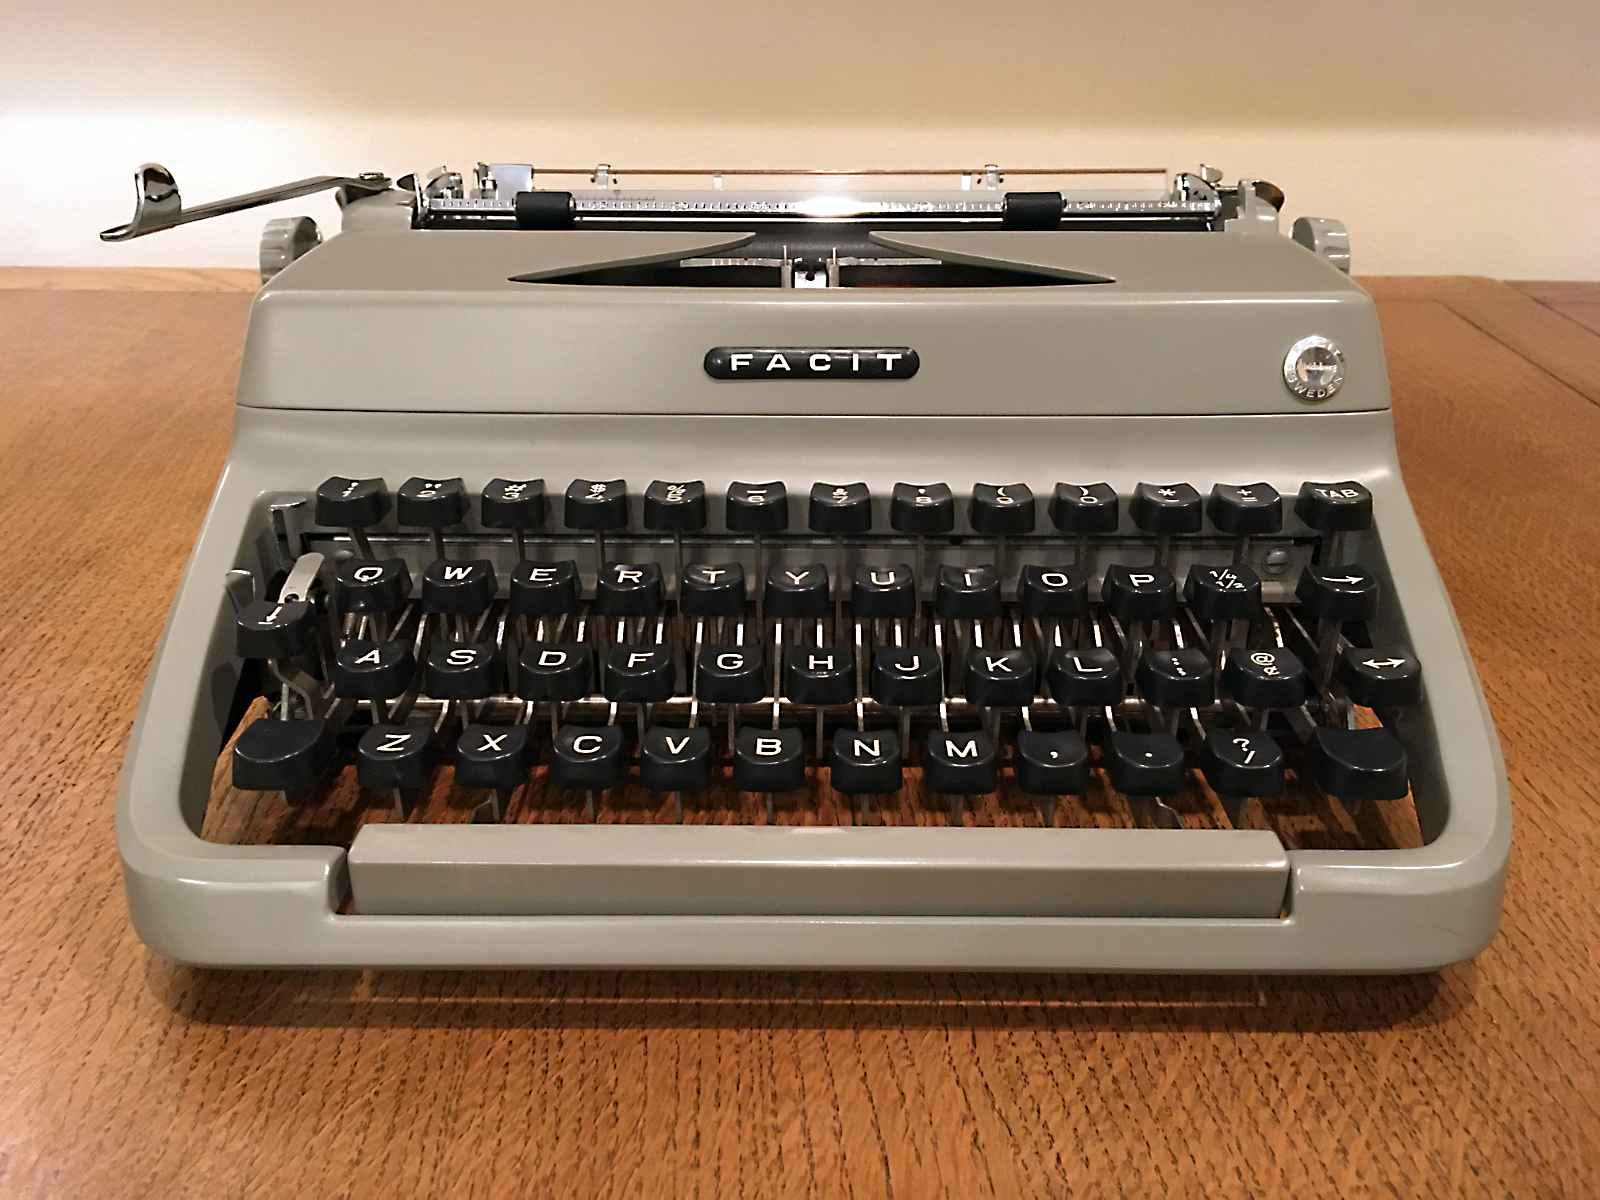 http://billguthrie.com/images/misc/typewriters/facitTP1frontClose.jpg